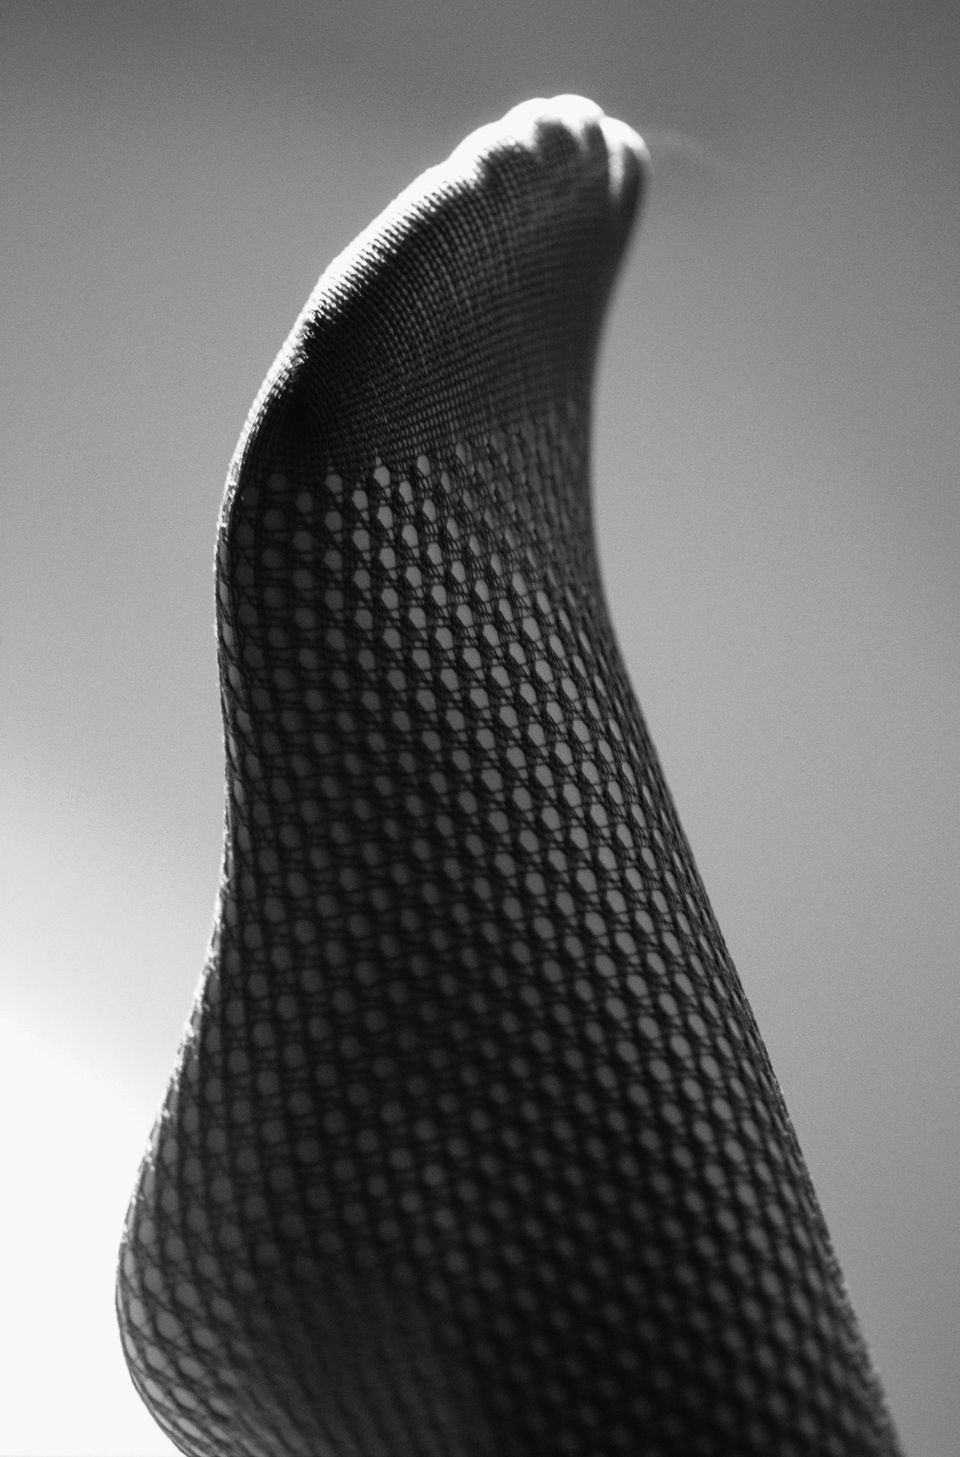 A single visible nylon stocking on a foot